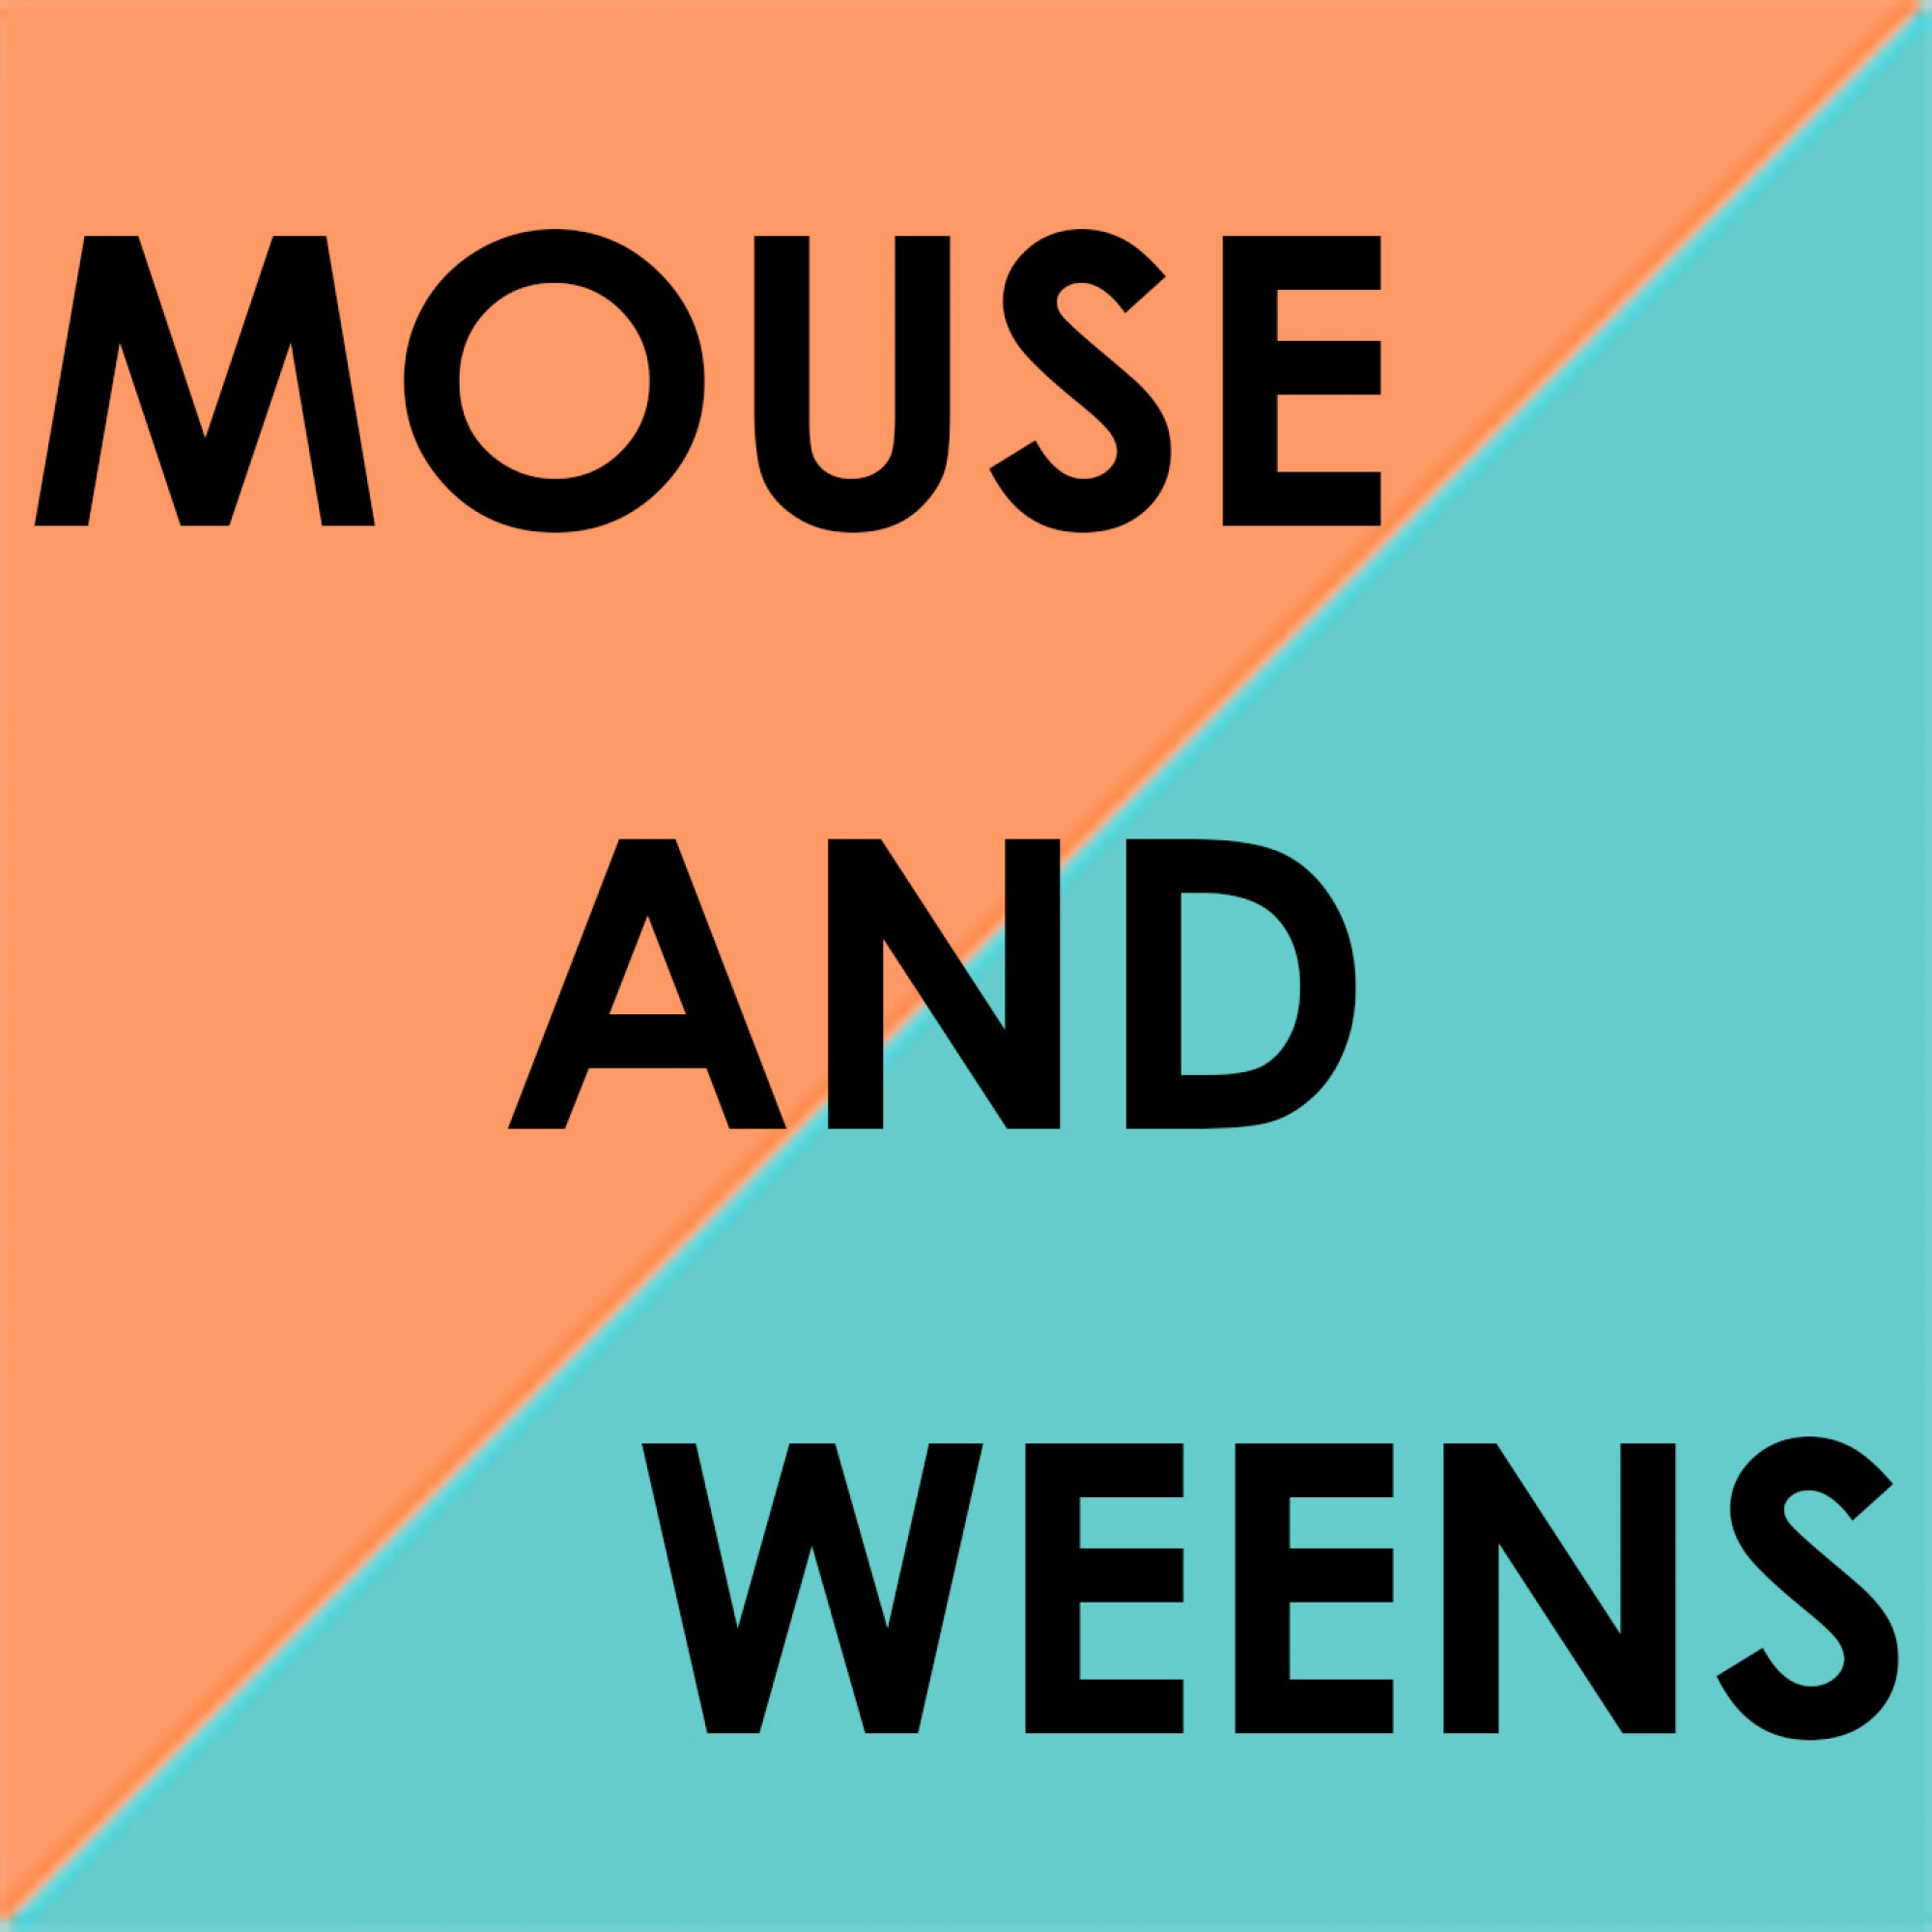 Ep6 – Drunk mouse, celebrity meetings, pubic wigs, James Franco, Aziz Ansari, #MeToo, The Dong Reaper